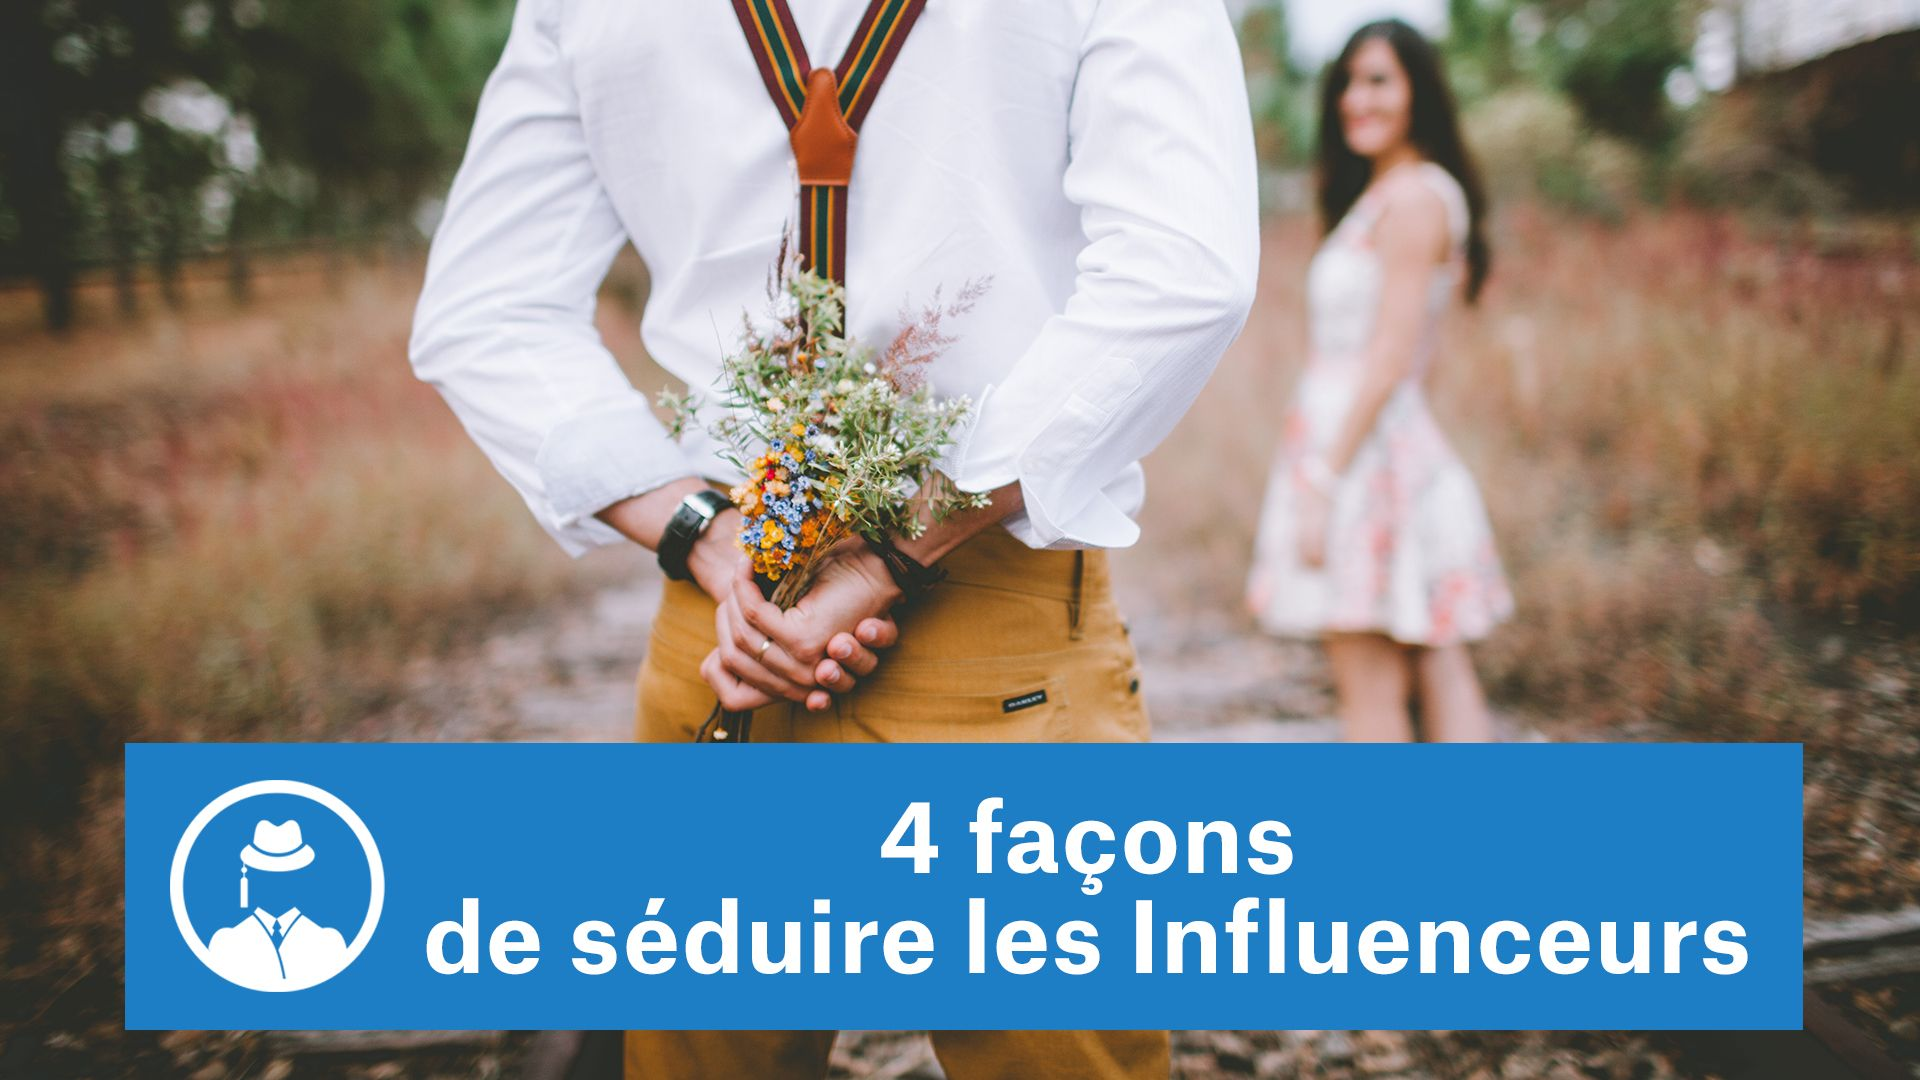 4 façons de séduire les influenceurs #GrowthHacking #WebMarketing #FormationGrowthHacking #CentreDeFormationFrance #TunnelAARRR #AARRR #SocialMedia #CommunityManagement #SEO #MarketingDigital #SiteWeb #Influenceurs